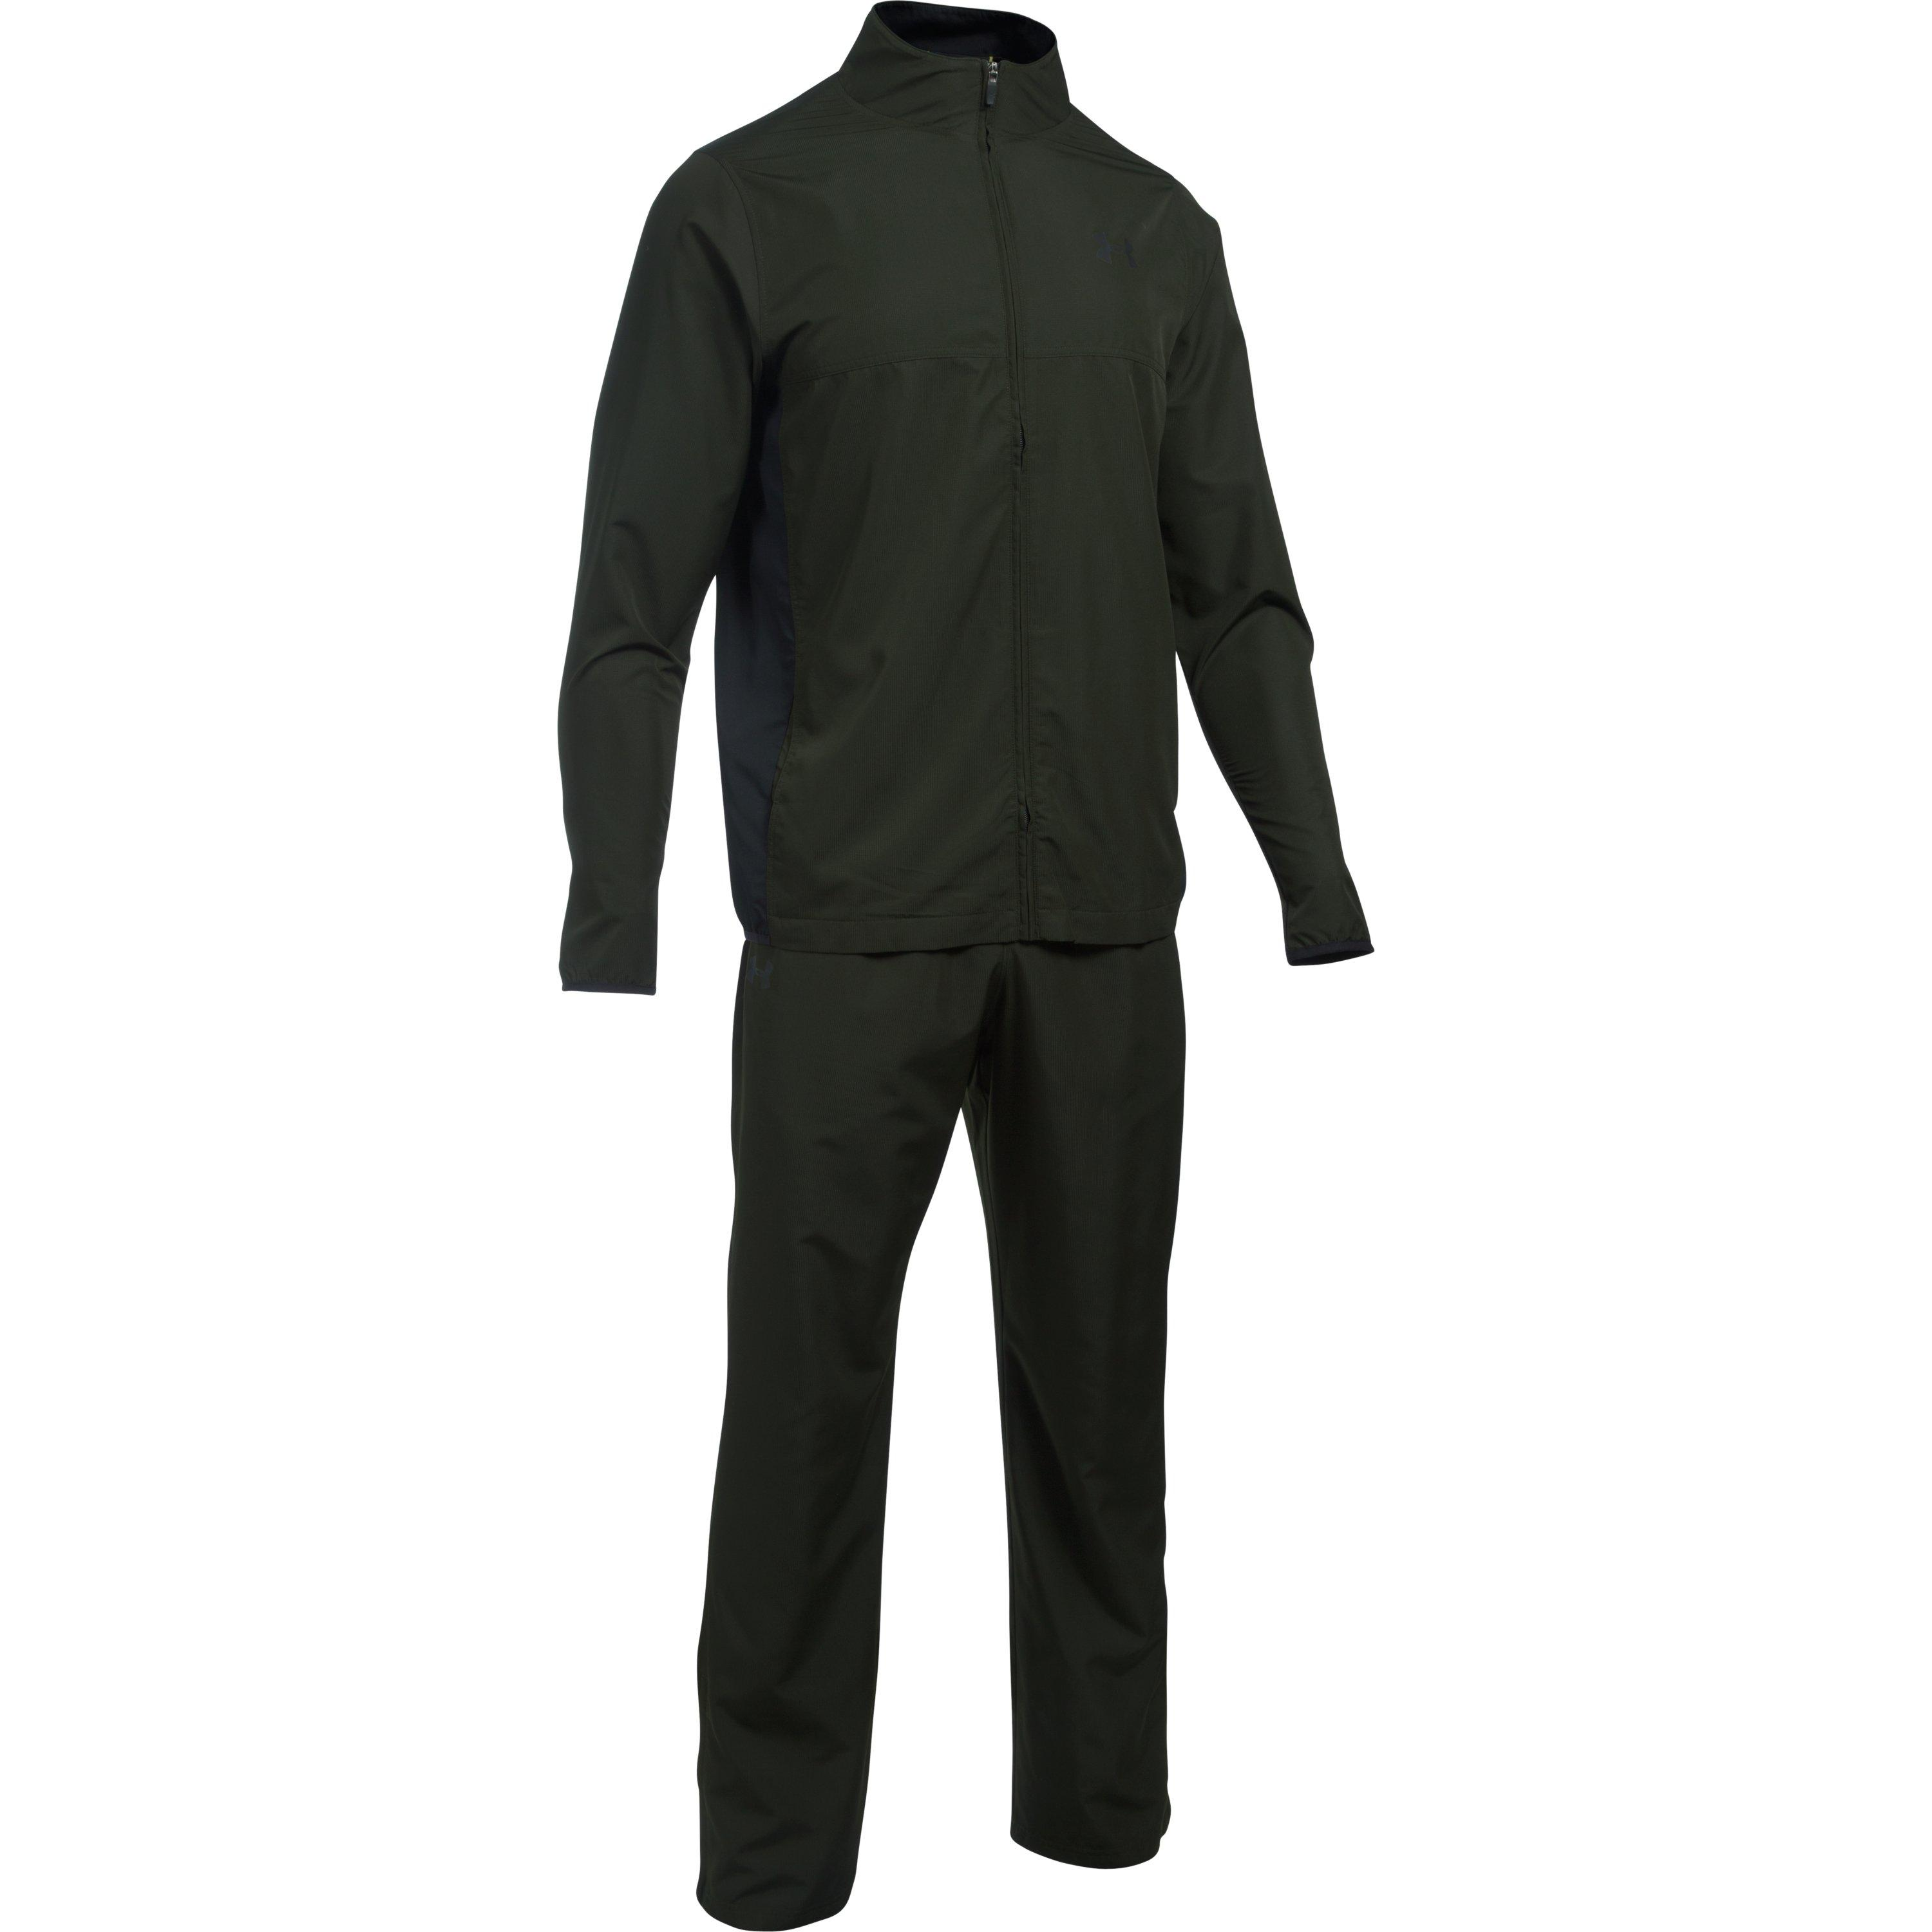 Under Armour Mens Vital Warm-Up Suit Artillery Green//Black Small Under Armour Apparel 1272435